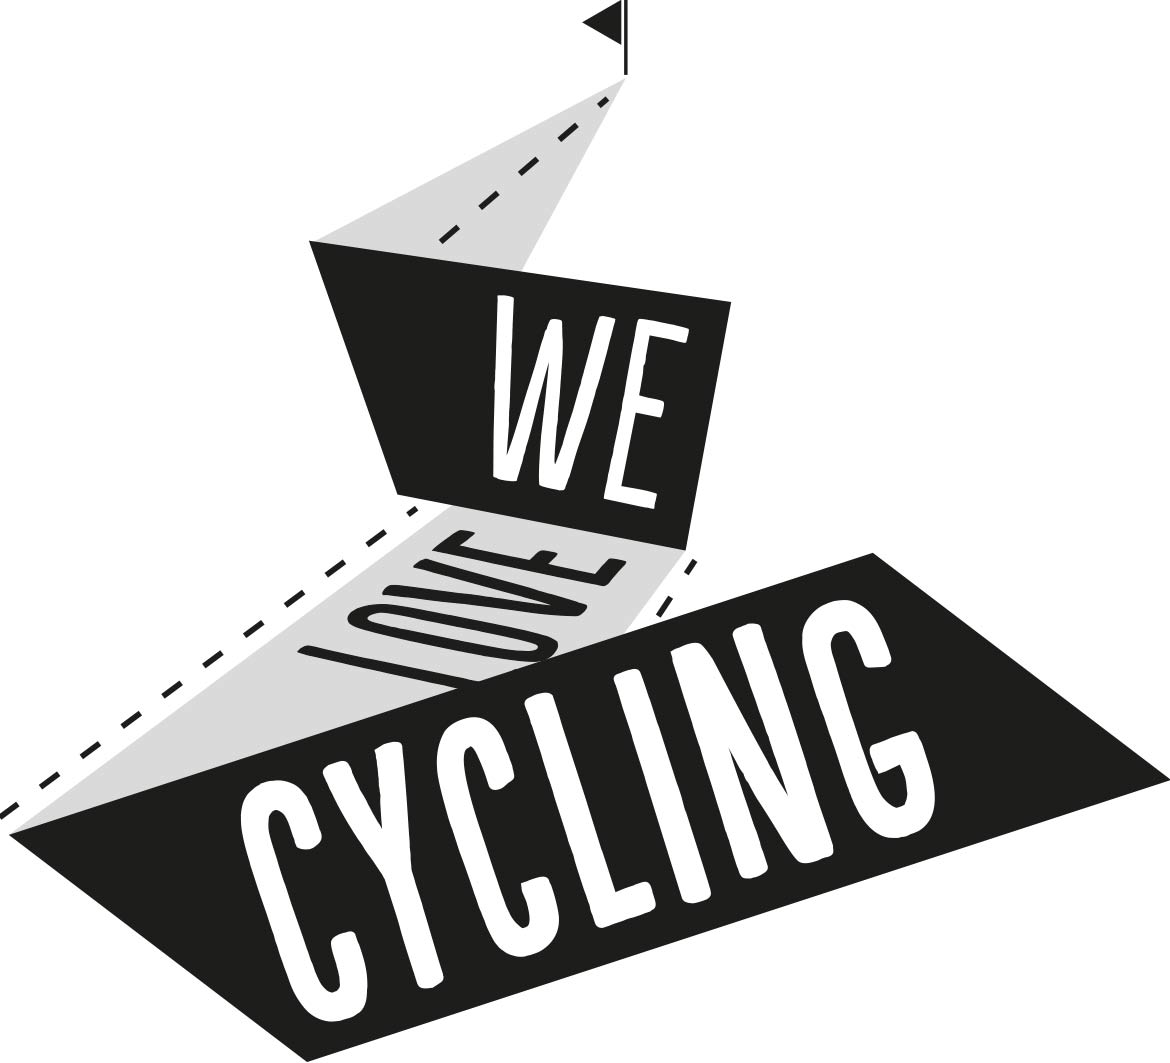 welovecycling_web